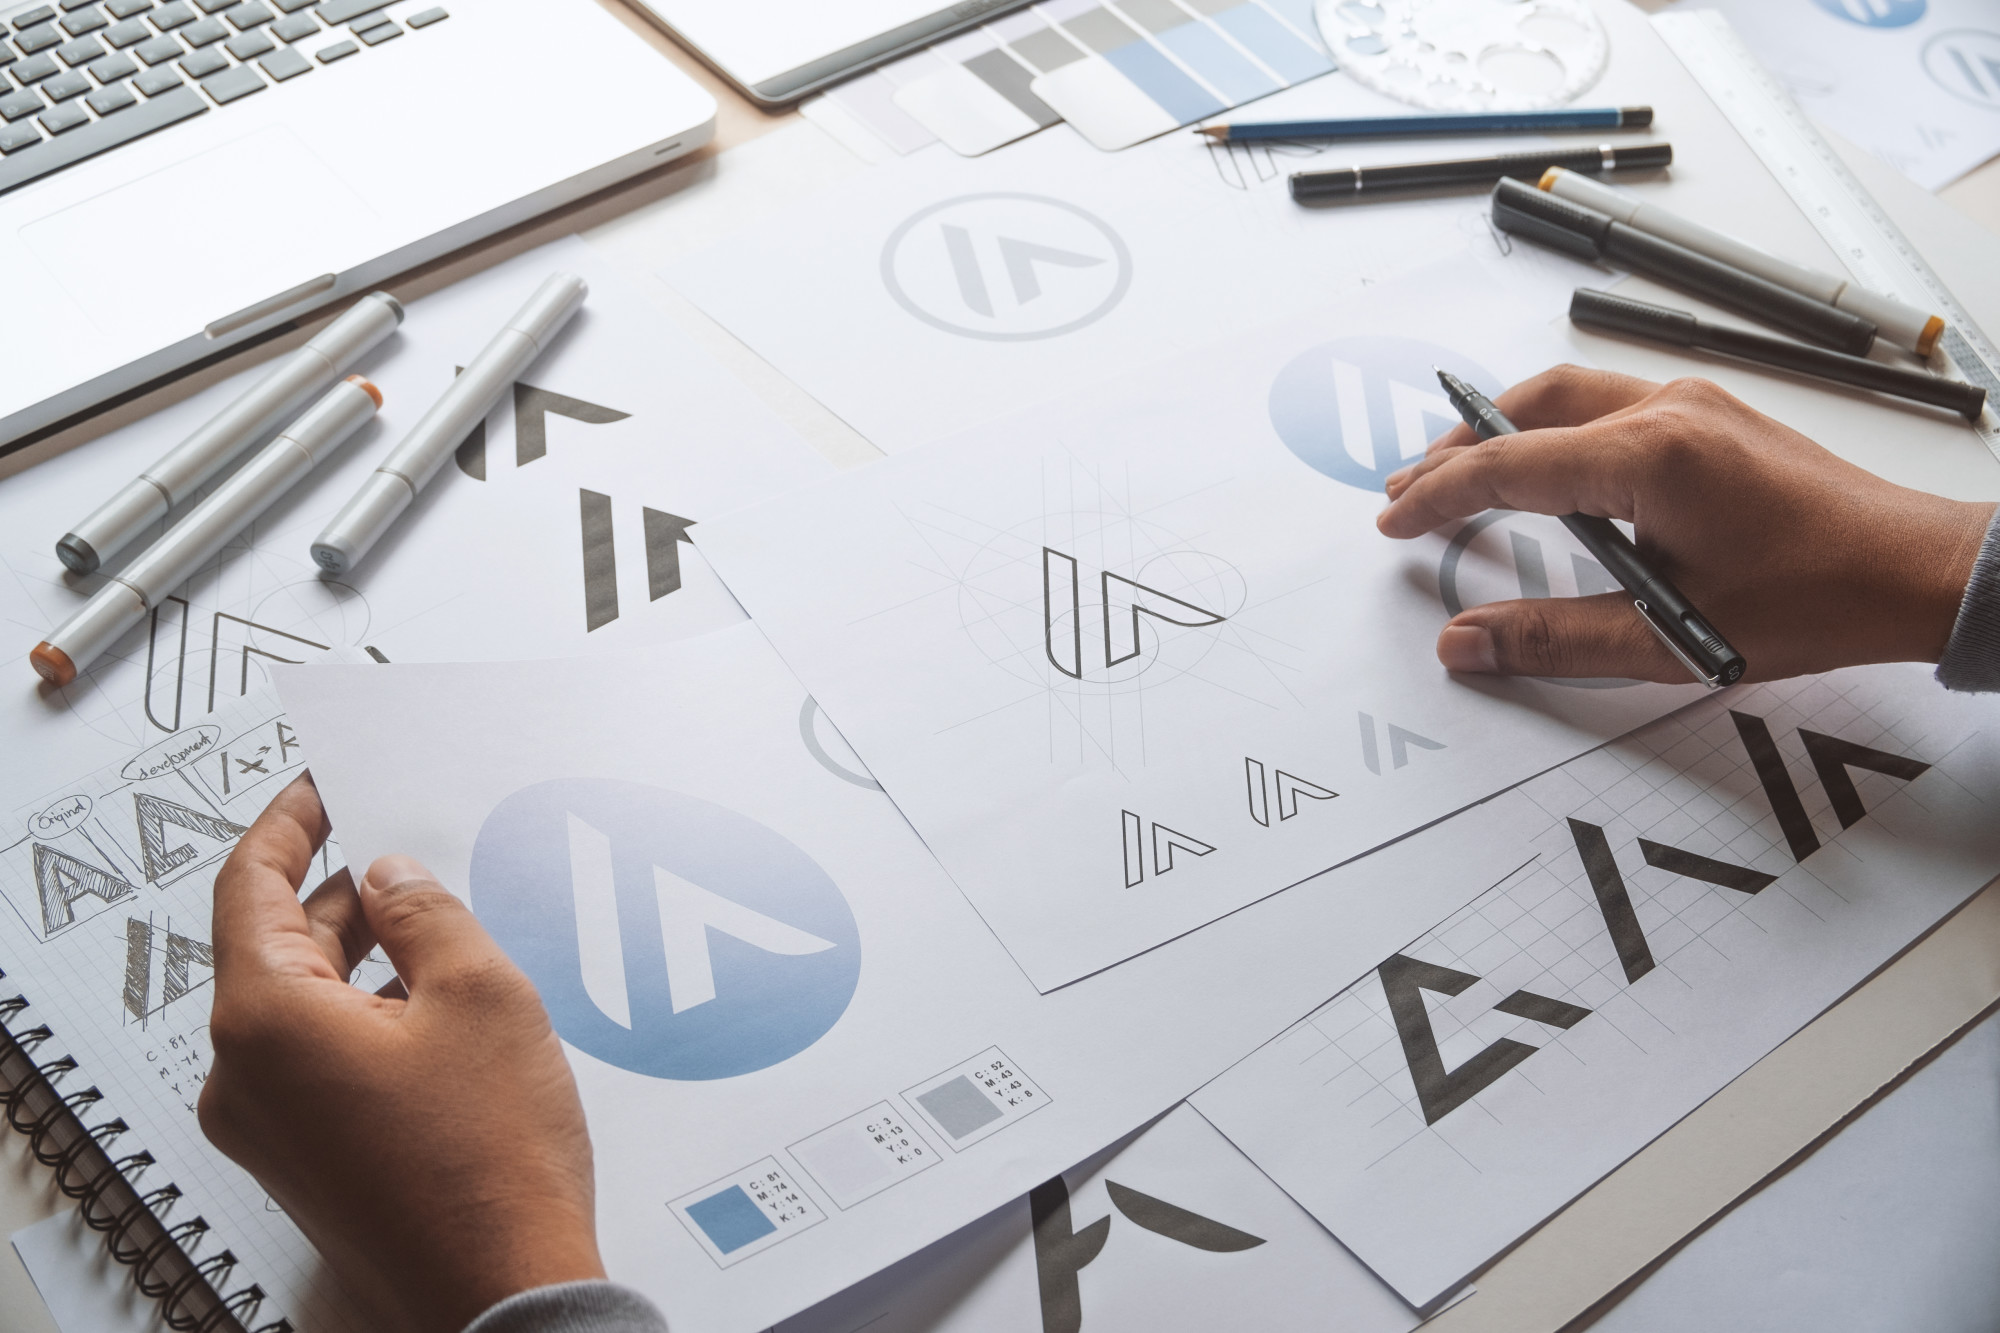 designer working on different types of logos